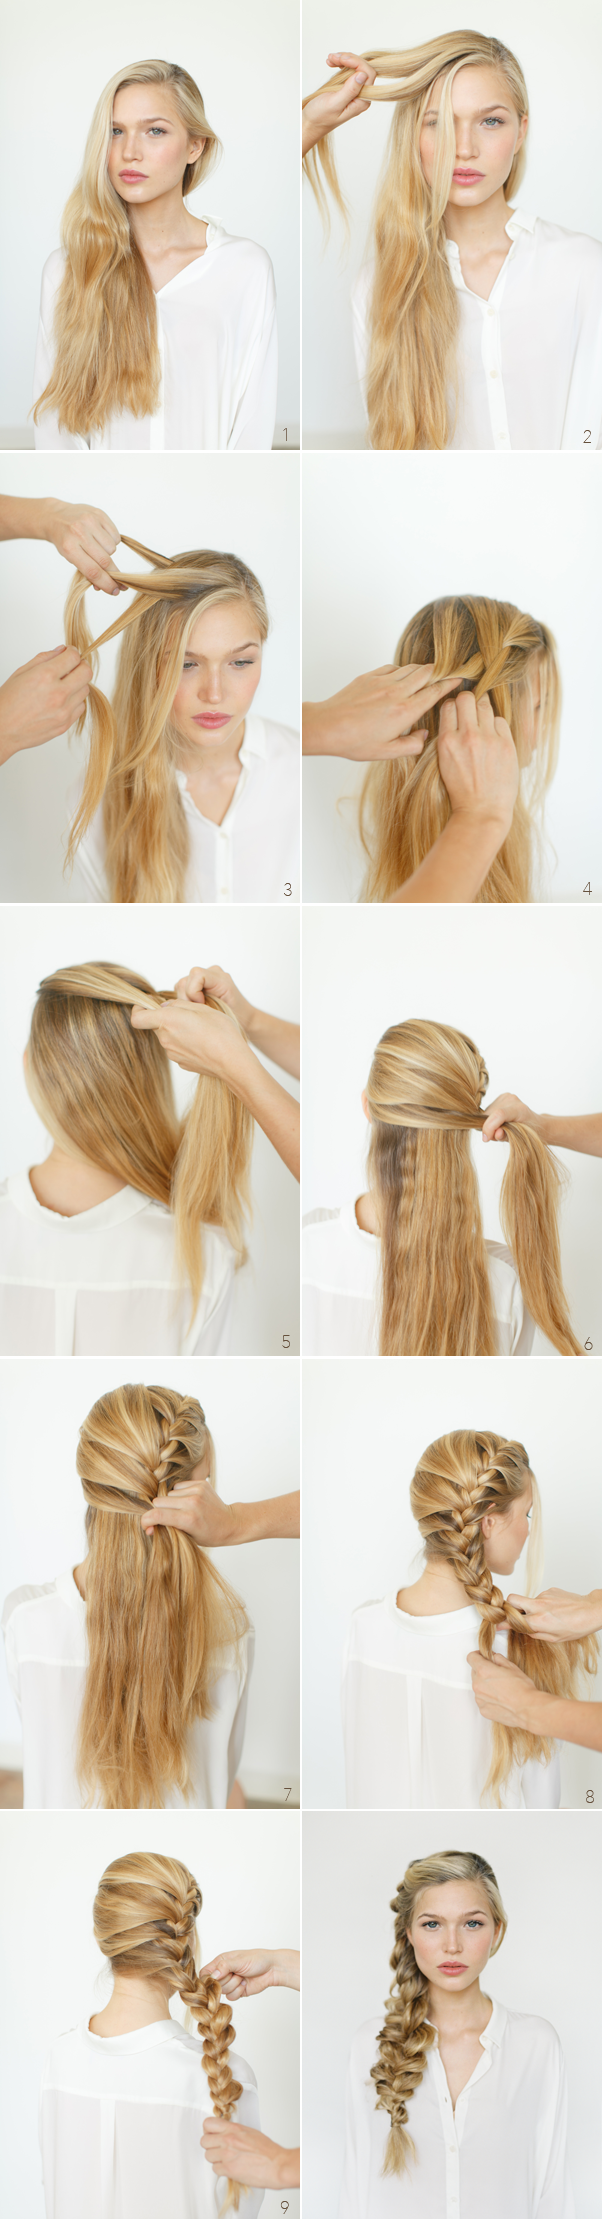 Fine 15 Beautiful Hairstyle Tutorials For All Occasions Styles Weekly Hairstyle Inspiration Daily Dogsangcom